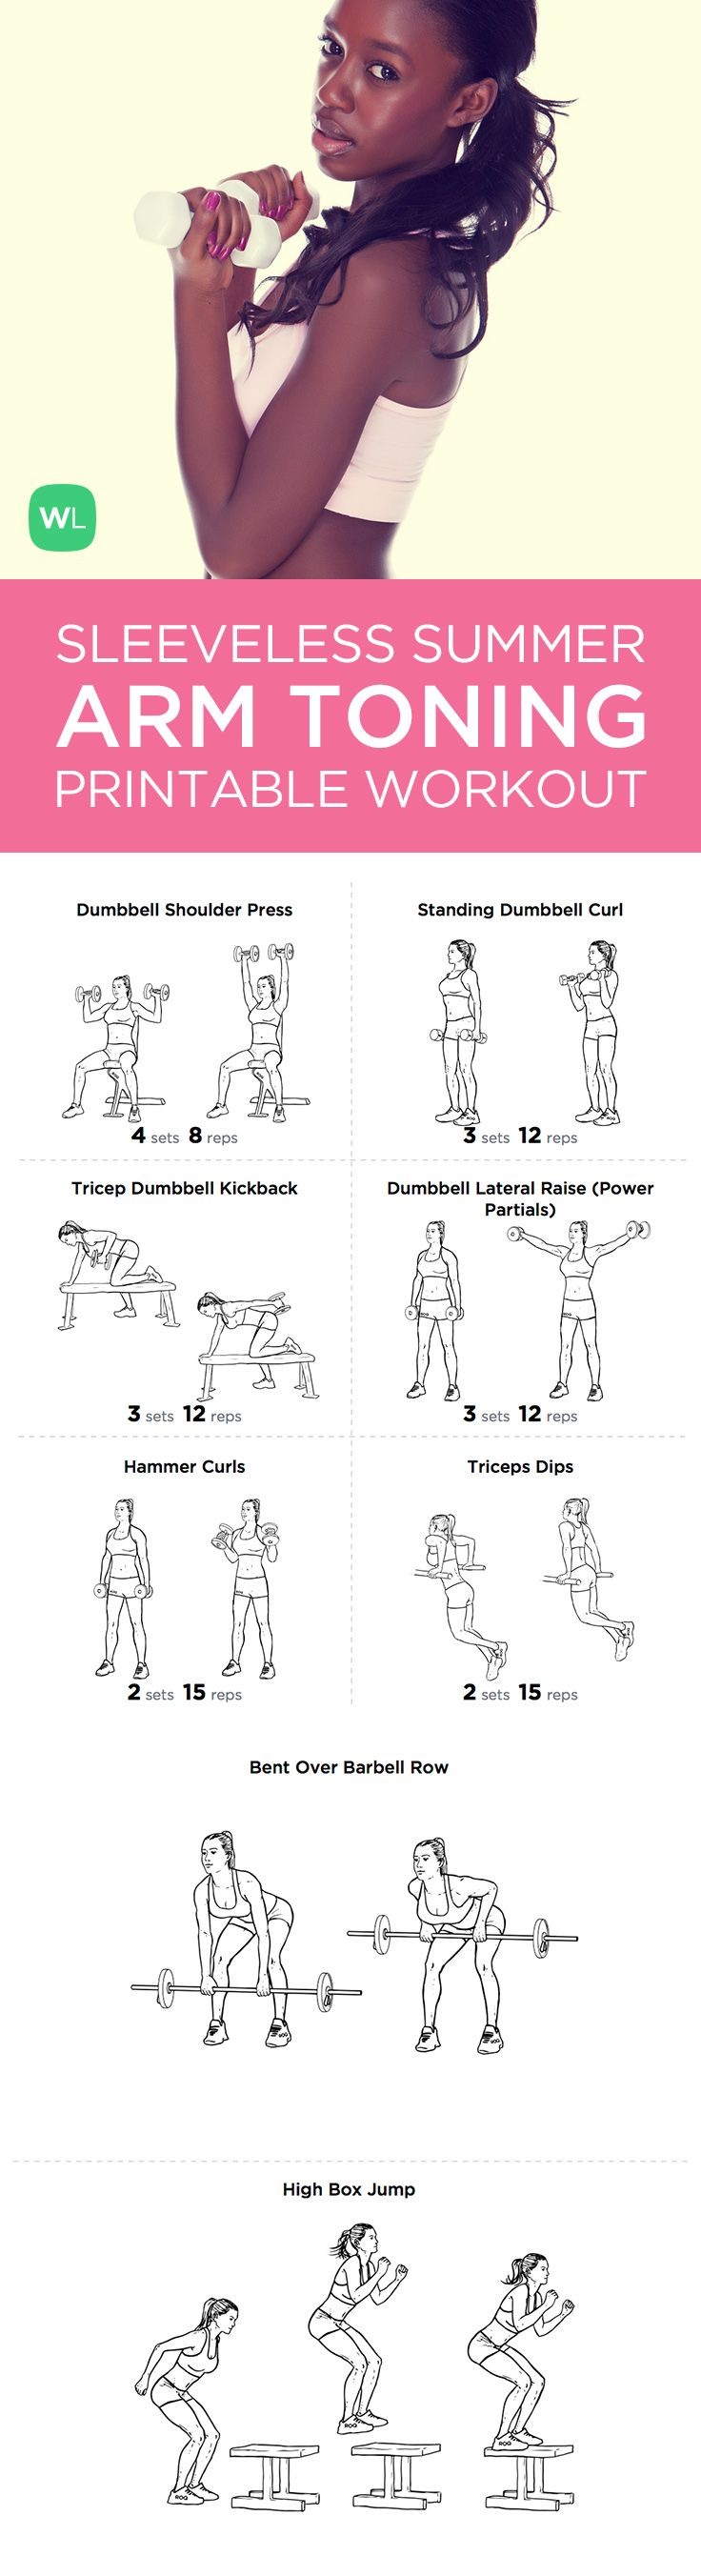 Worried about wearing all those sleeveless shirts this summer season? Try this 15-minute workout and you will be well prepared! The Summer Sleeveless Arms 15-minute Toning Printable Workout for Women